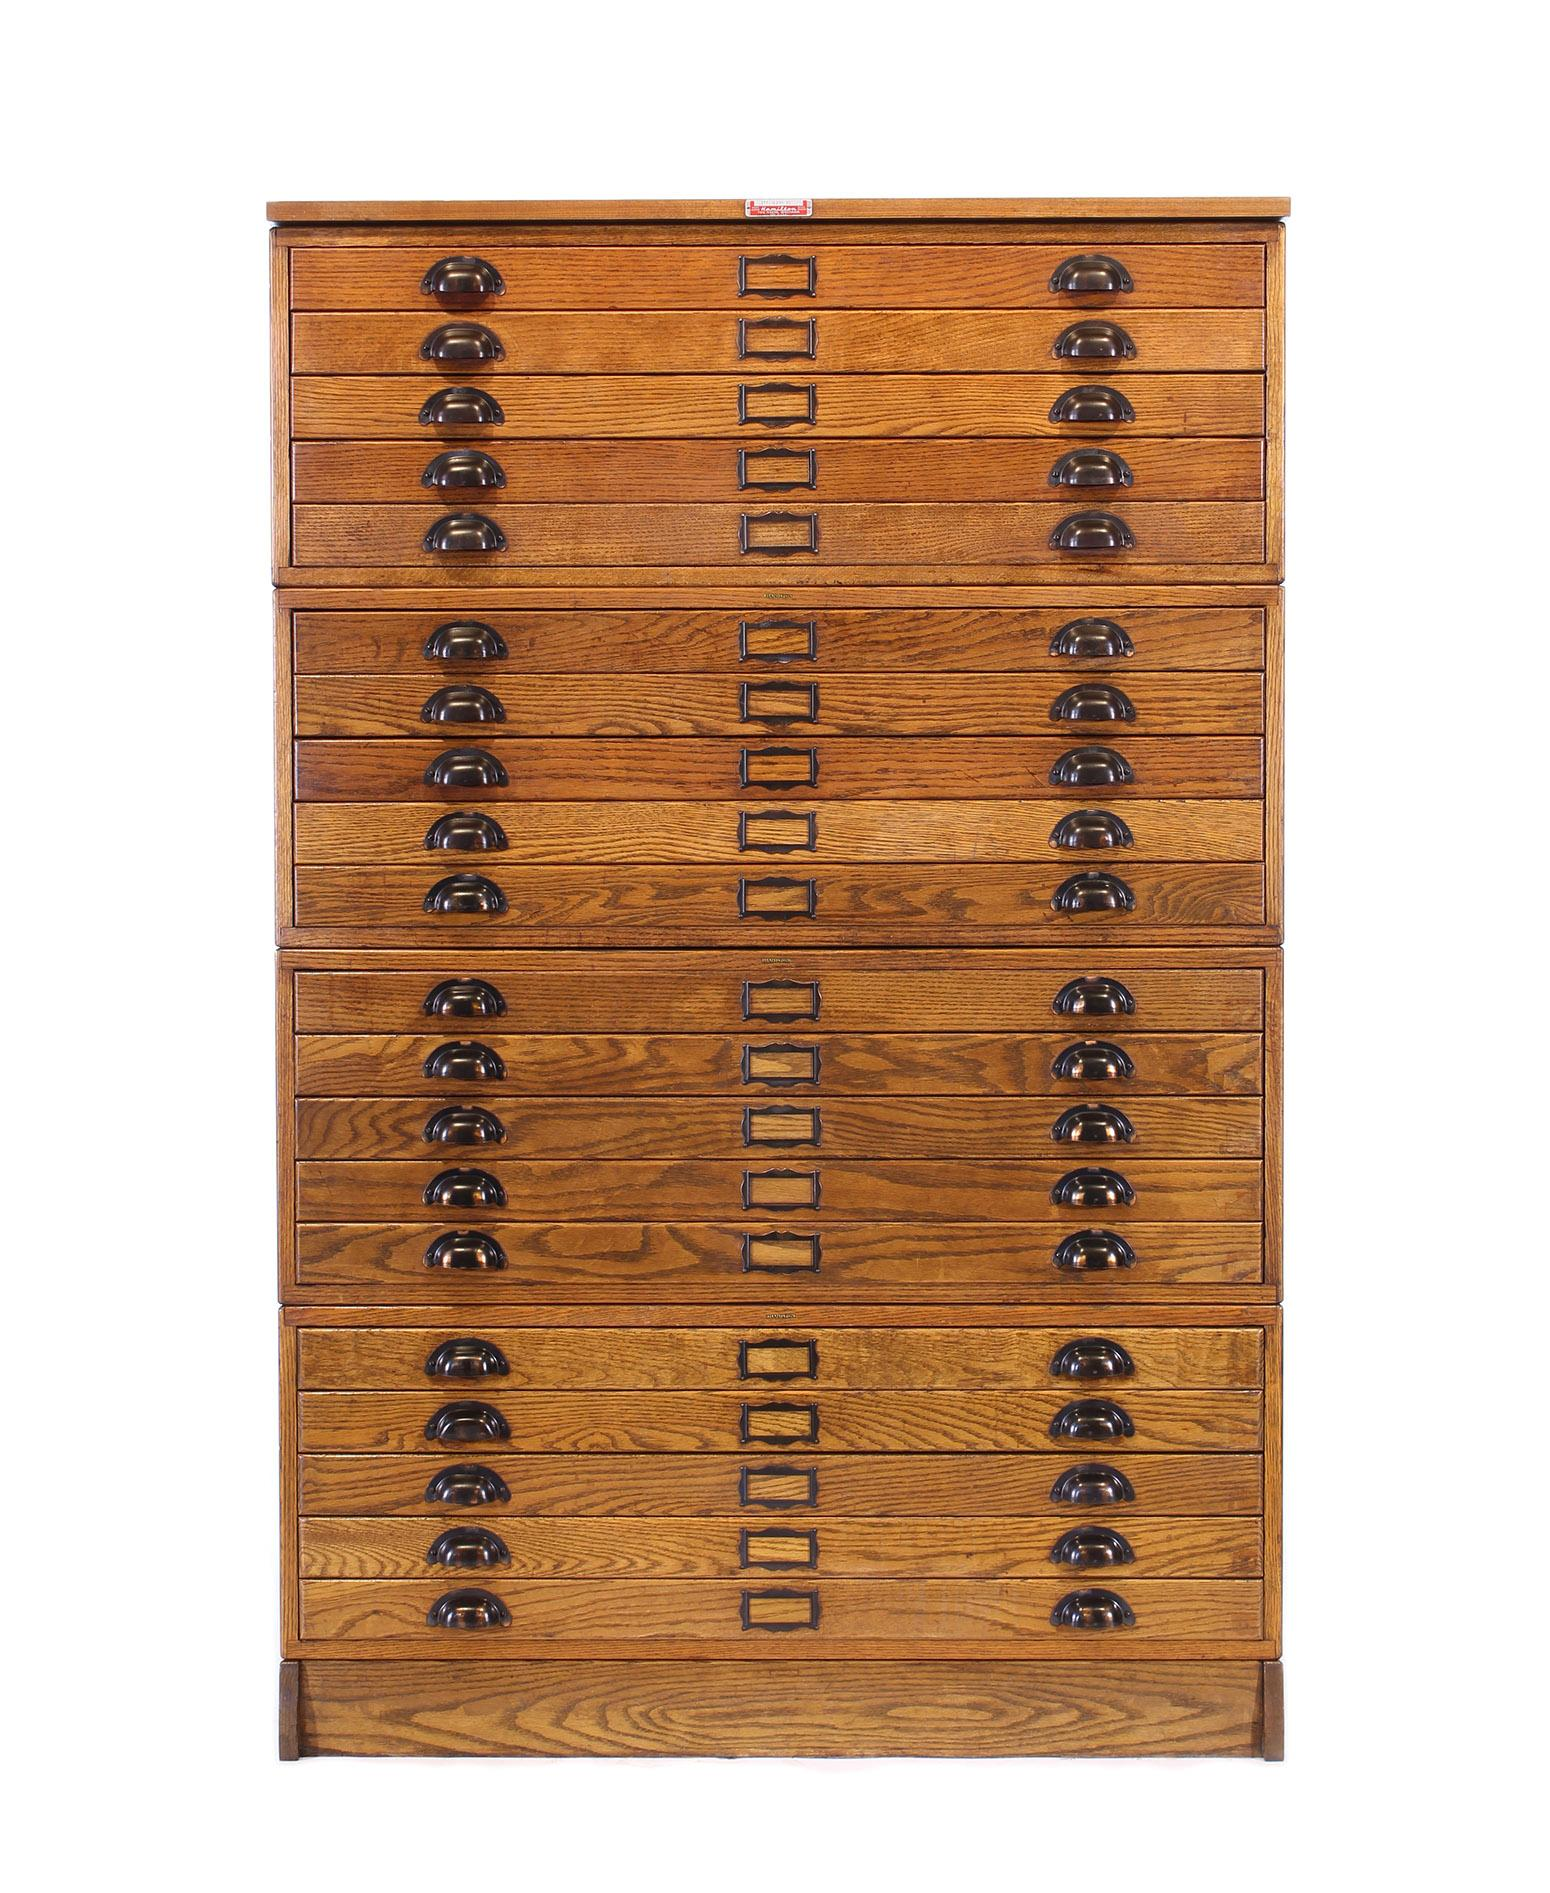 Genial Vintage Hamilton Oak 20 Drawer Flat File Storage Cabinet. In Six Sections,  Four Cabinets